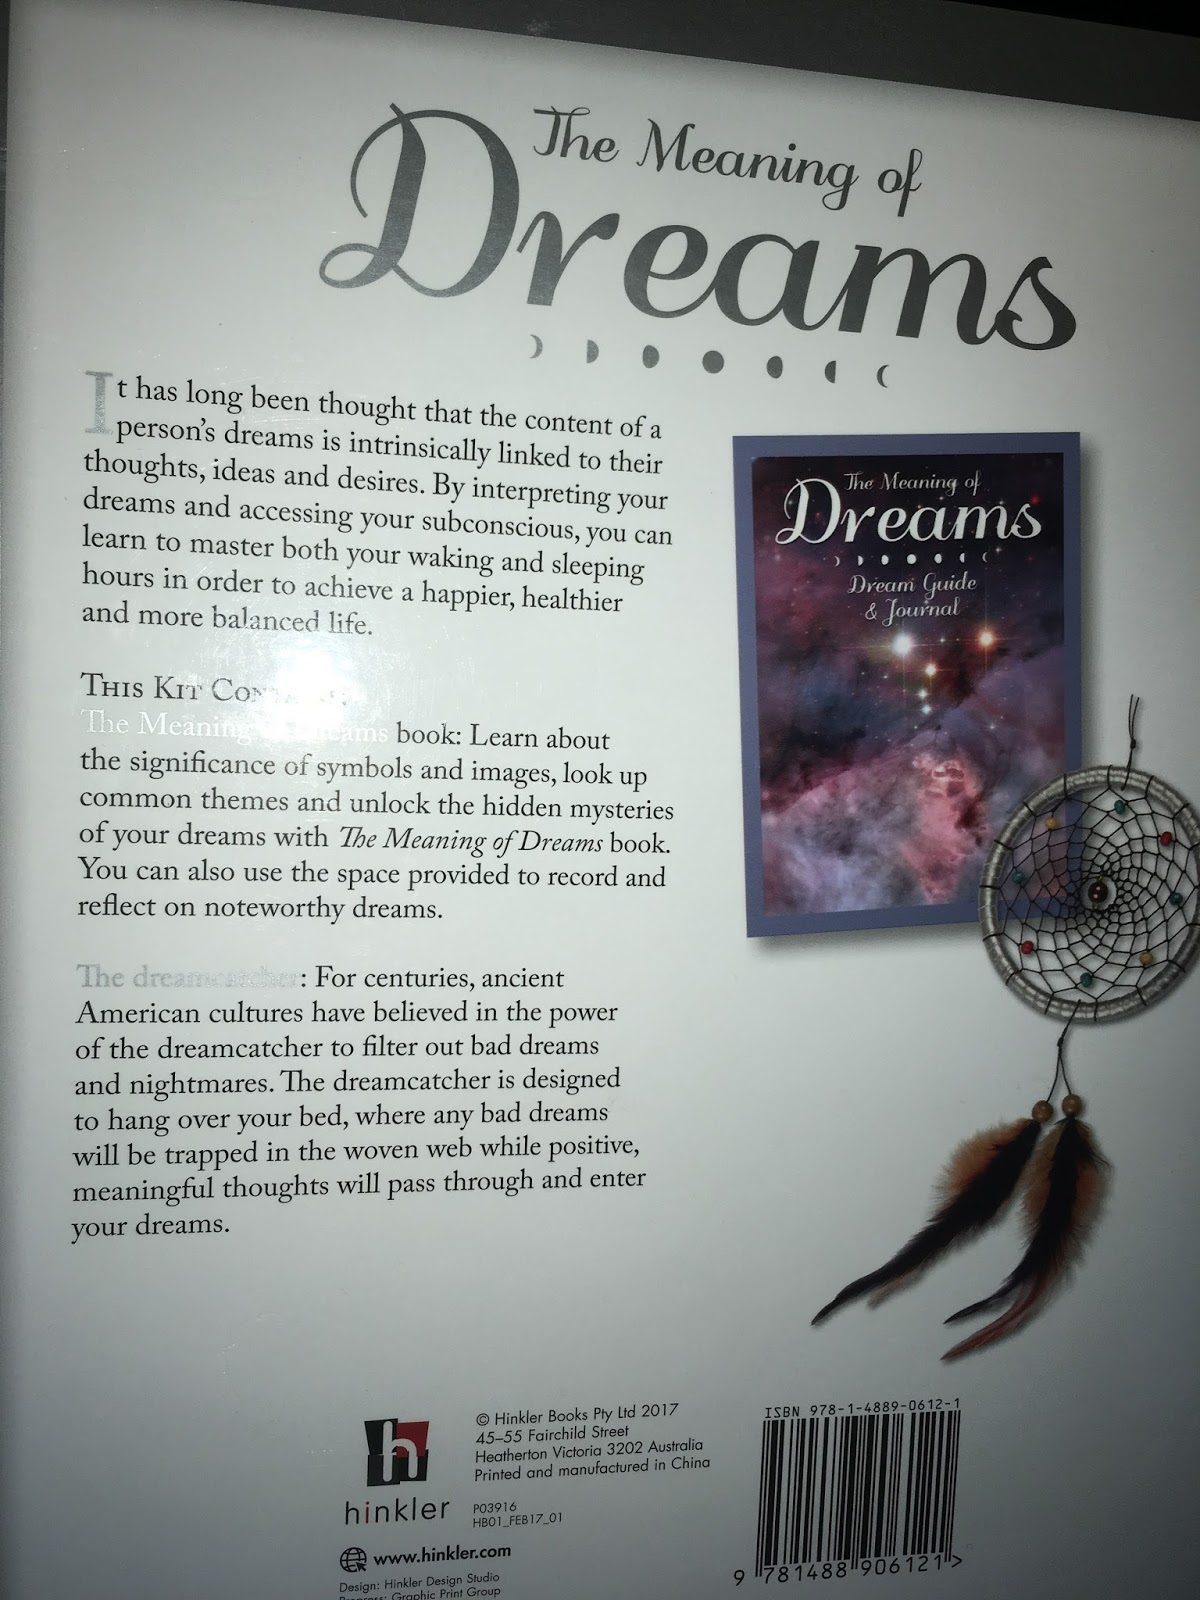 We learn from the dream books, what dreams of monkeys 9